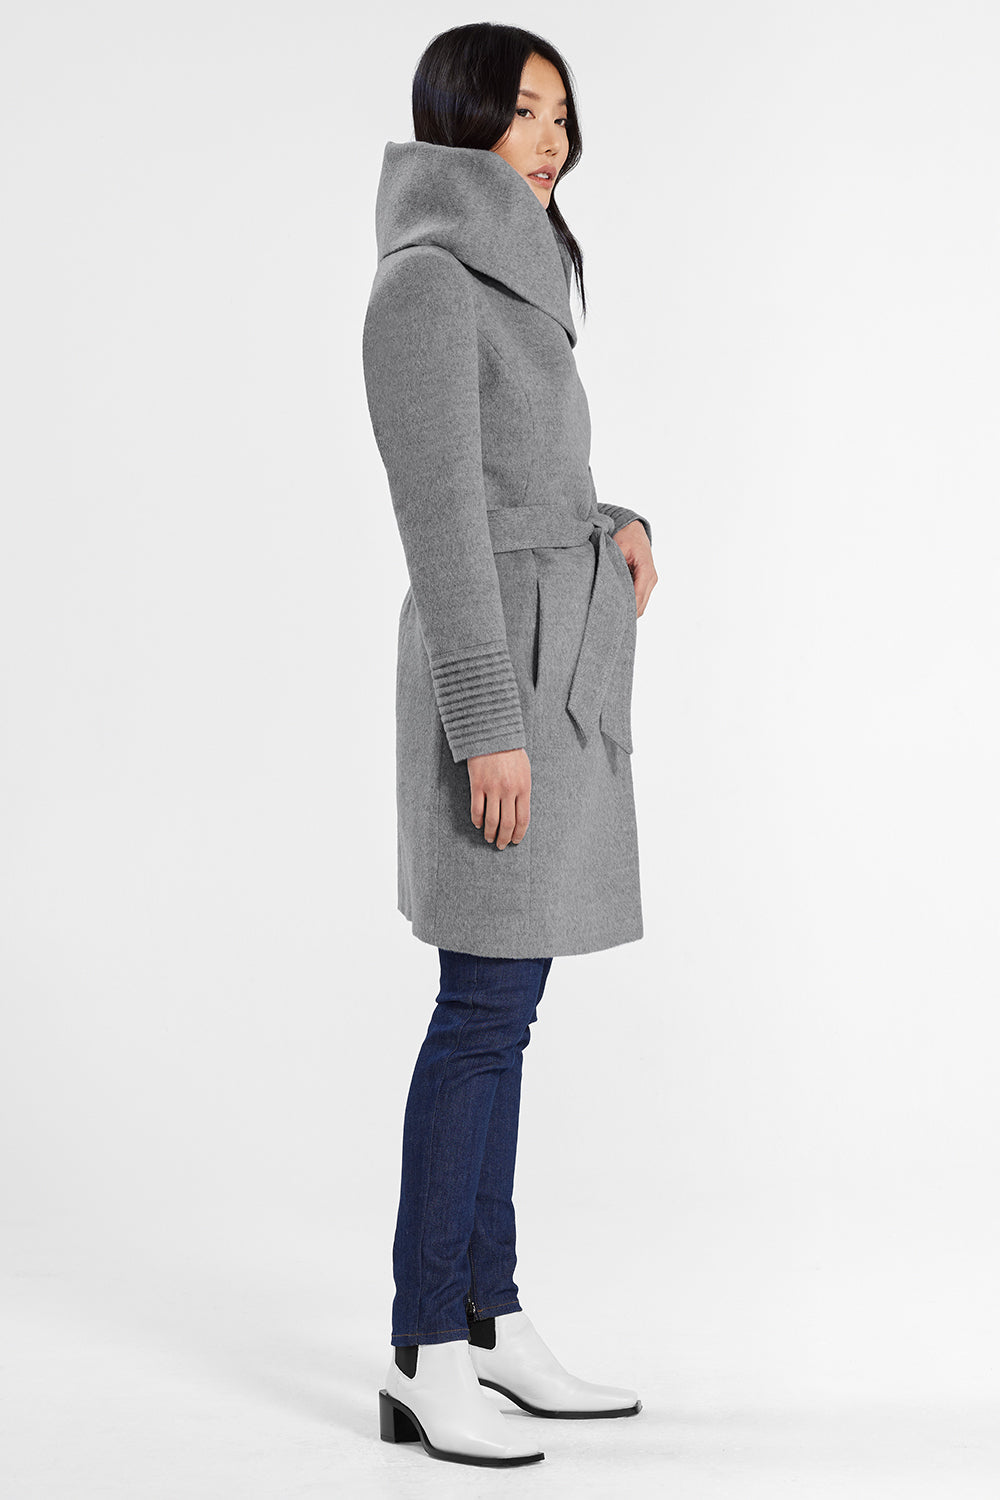 Sentaler Mid Length Hooded Wrap Coat featured in Baby Alpaca and available in Shale Grey. Seen from side.